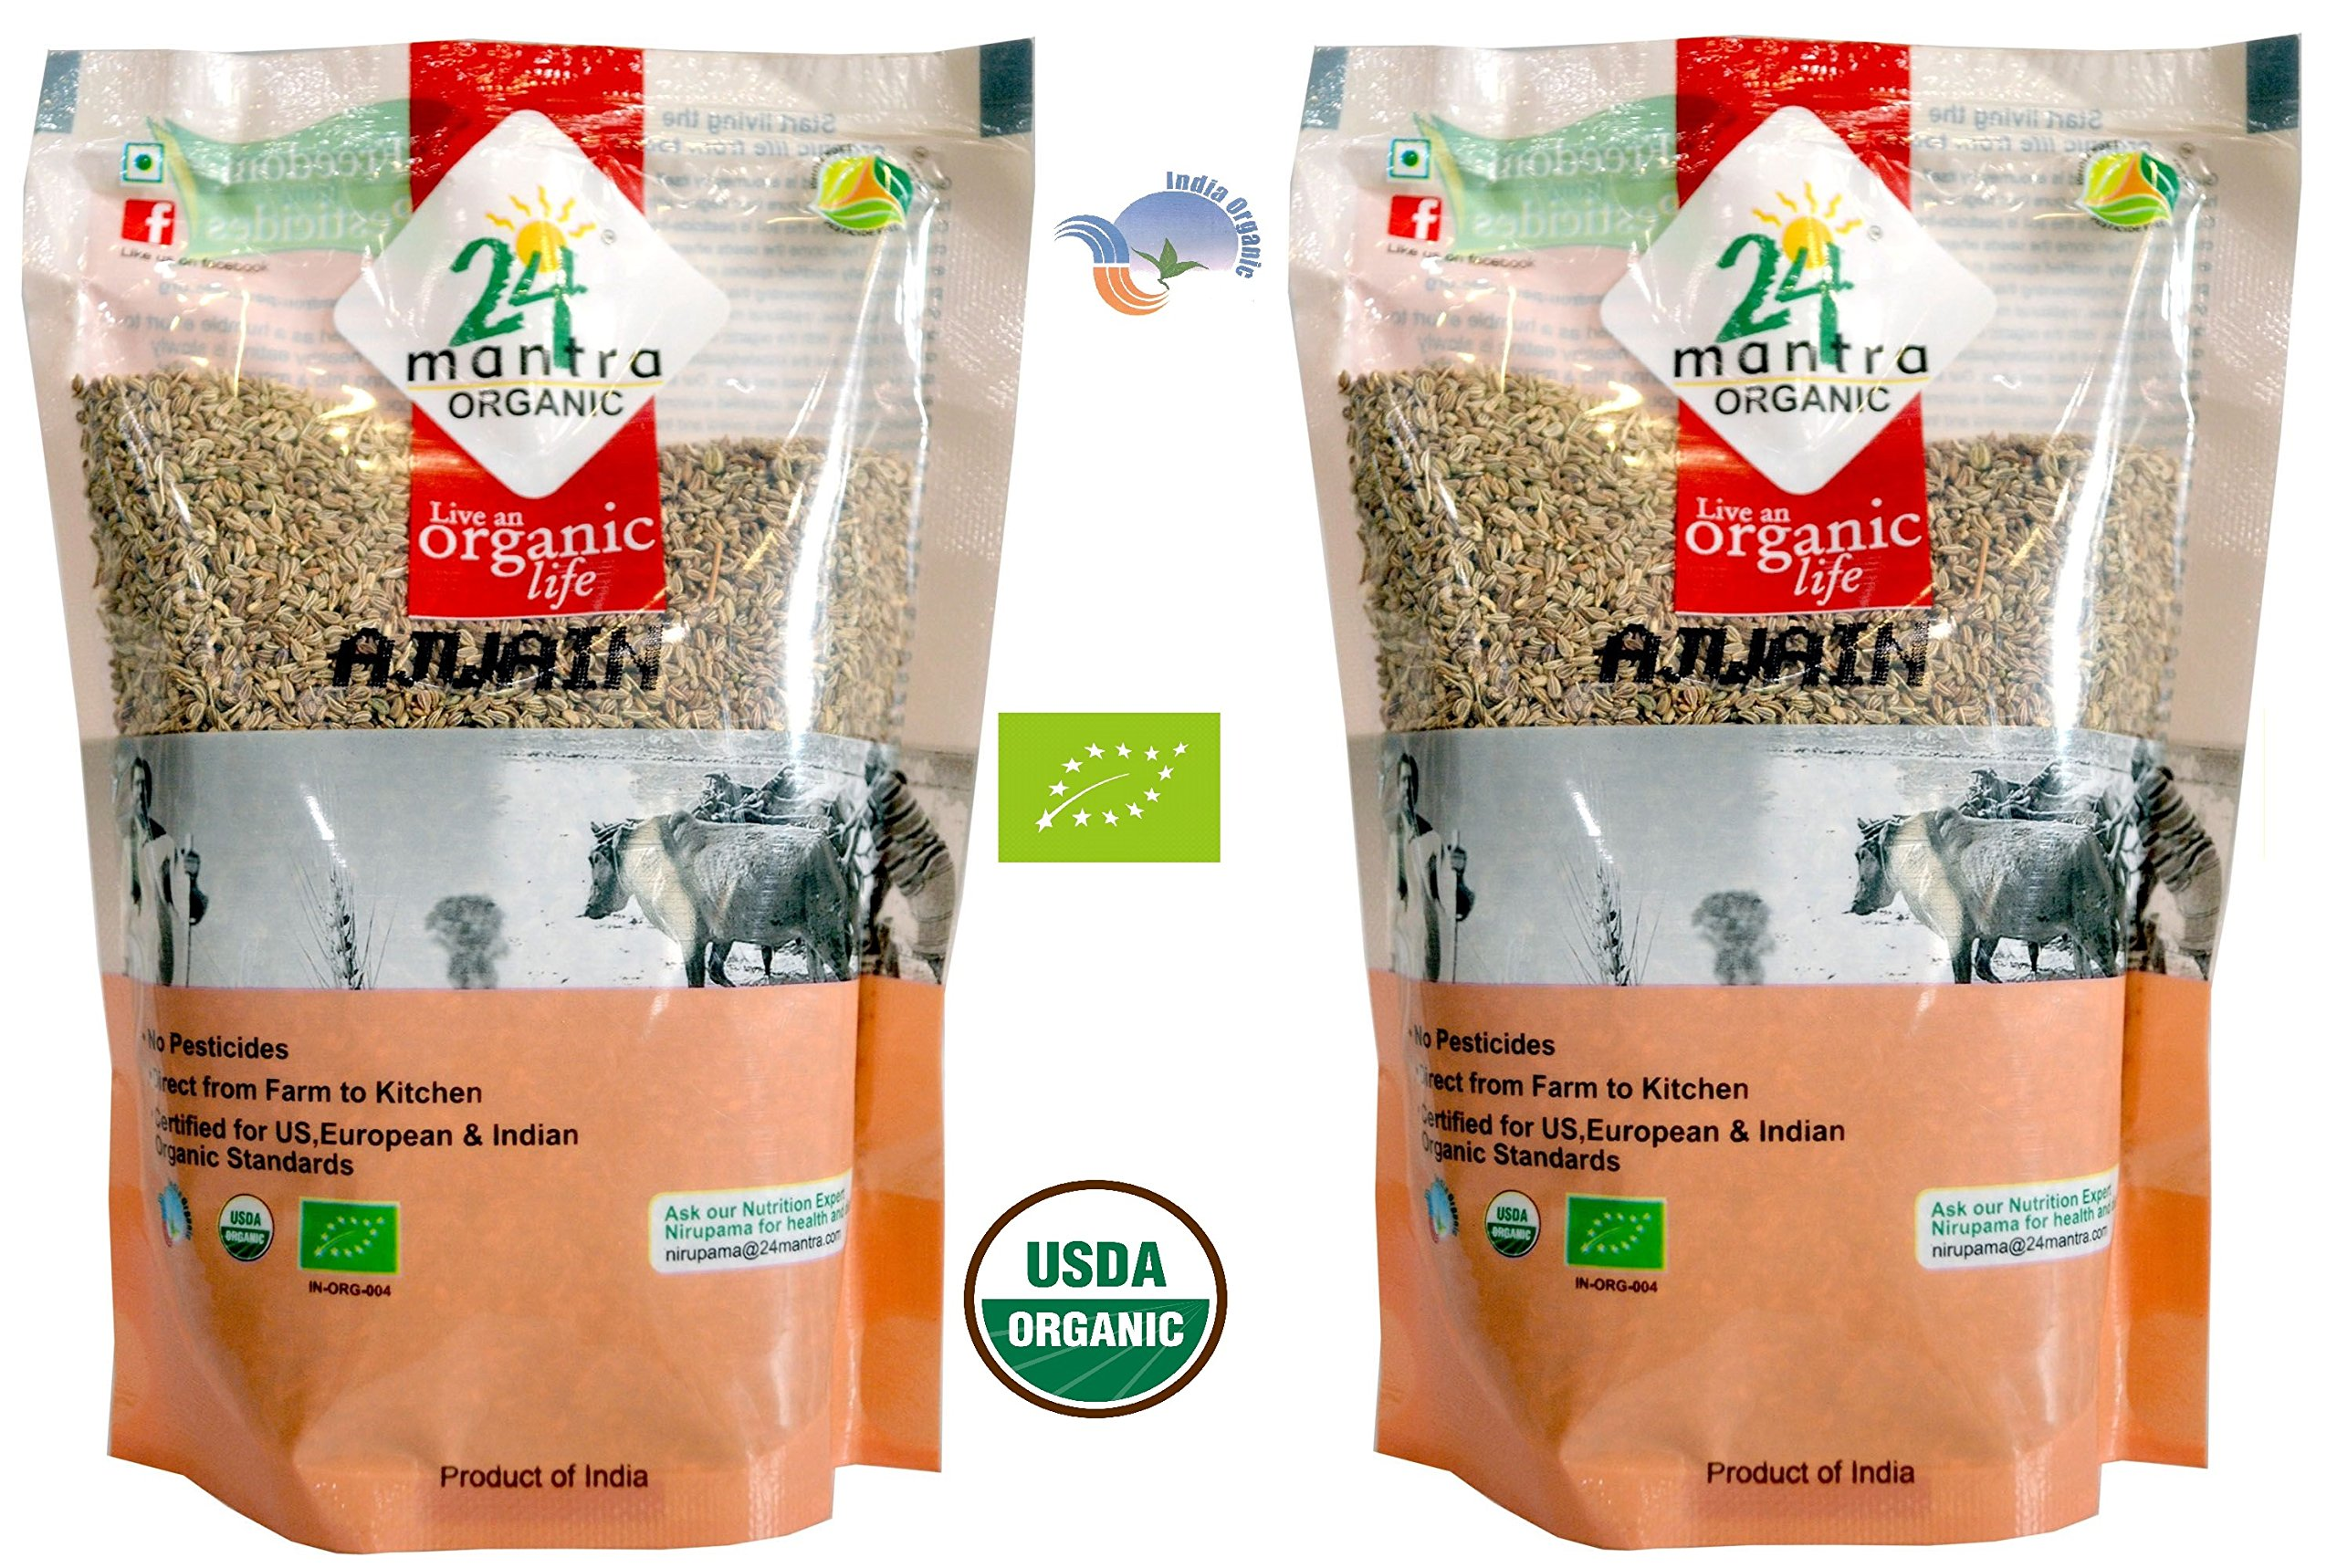 Organic Ajwain Seeds - ★ USDA Certified Organic - ★ European Union Certified Organic - ★ Pesticides Free - ★ Adulteration Free - ★ Sodium Free - Pack of 2 X 7 Ounces (14 Ounces) - 24 Mantra Organic